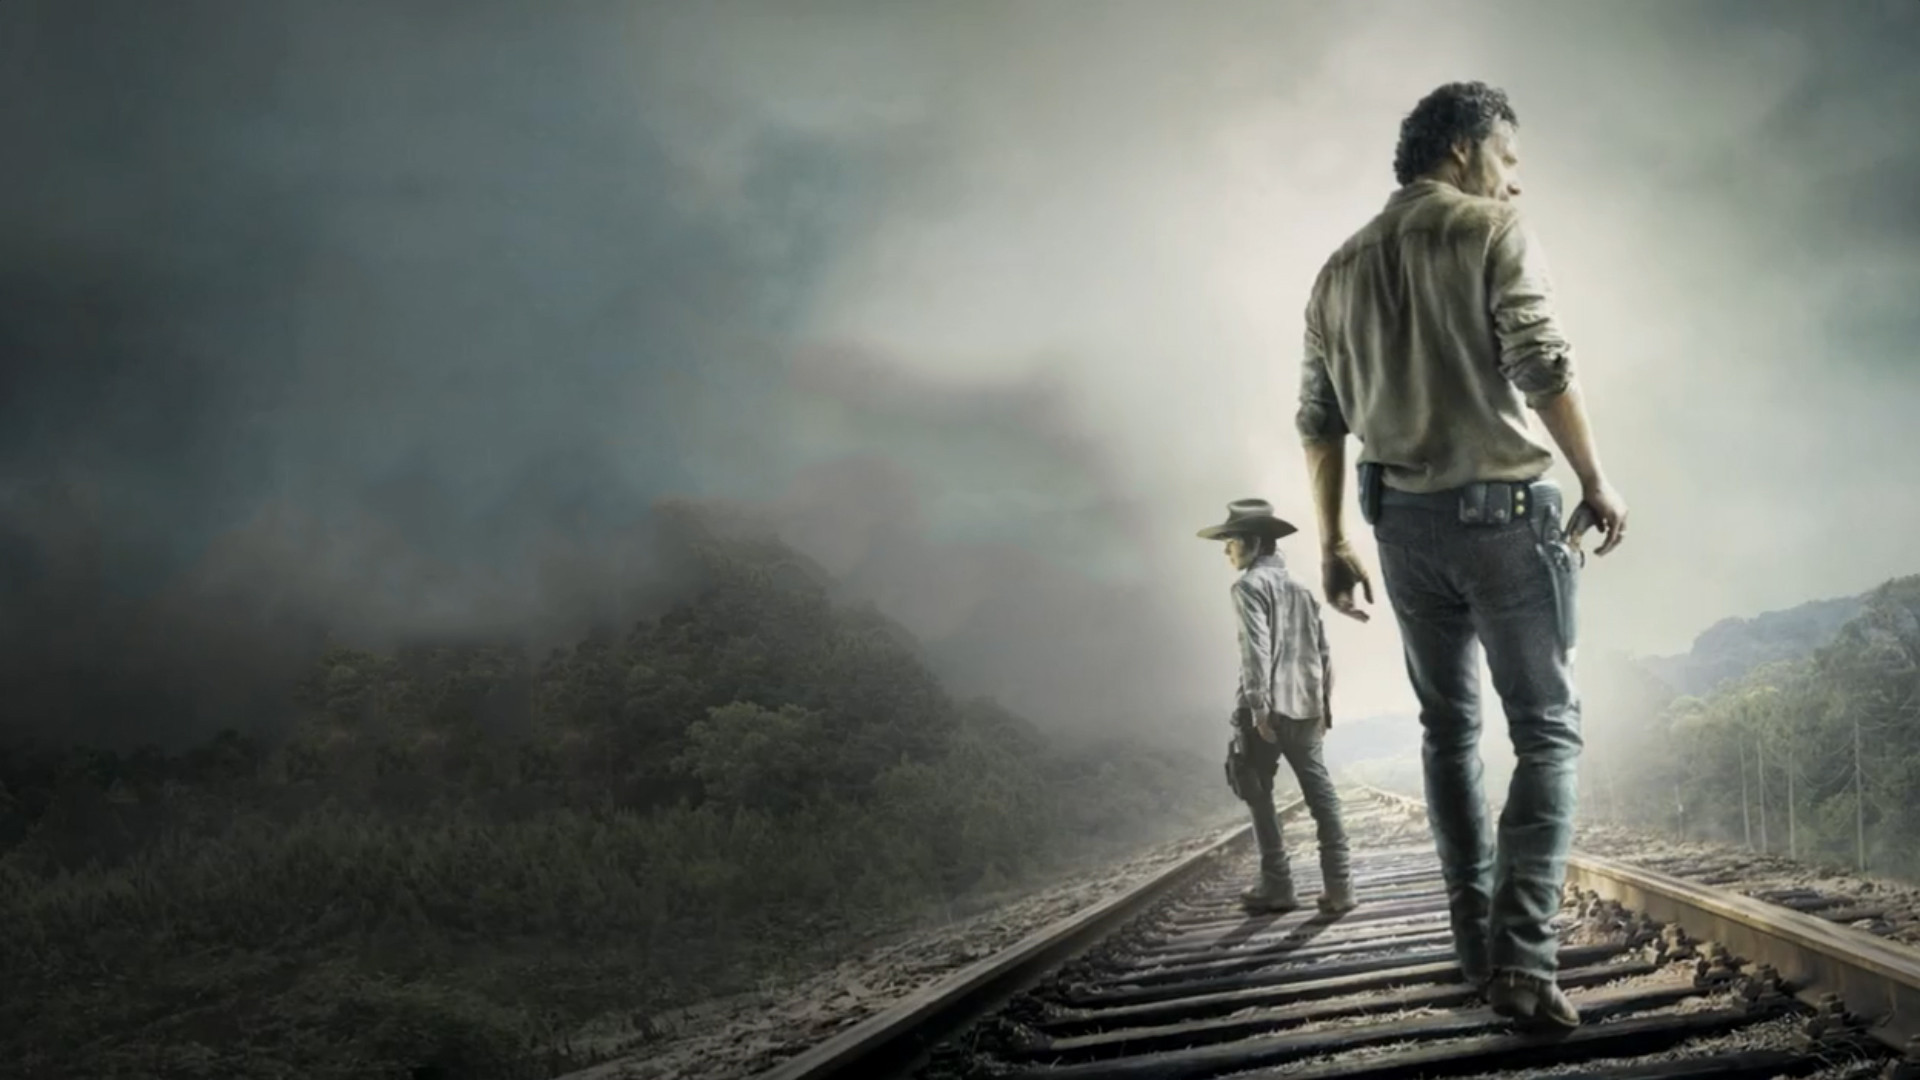 Walking Dead Wallpaper For Android: Walking Dead Wallpaper 1080p (61+ Images